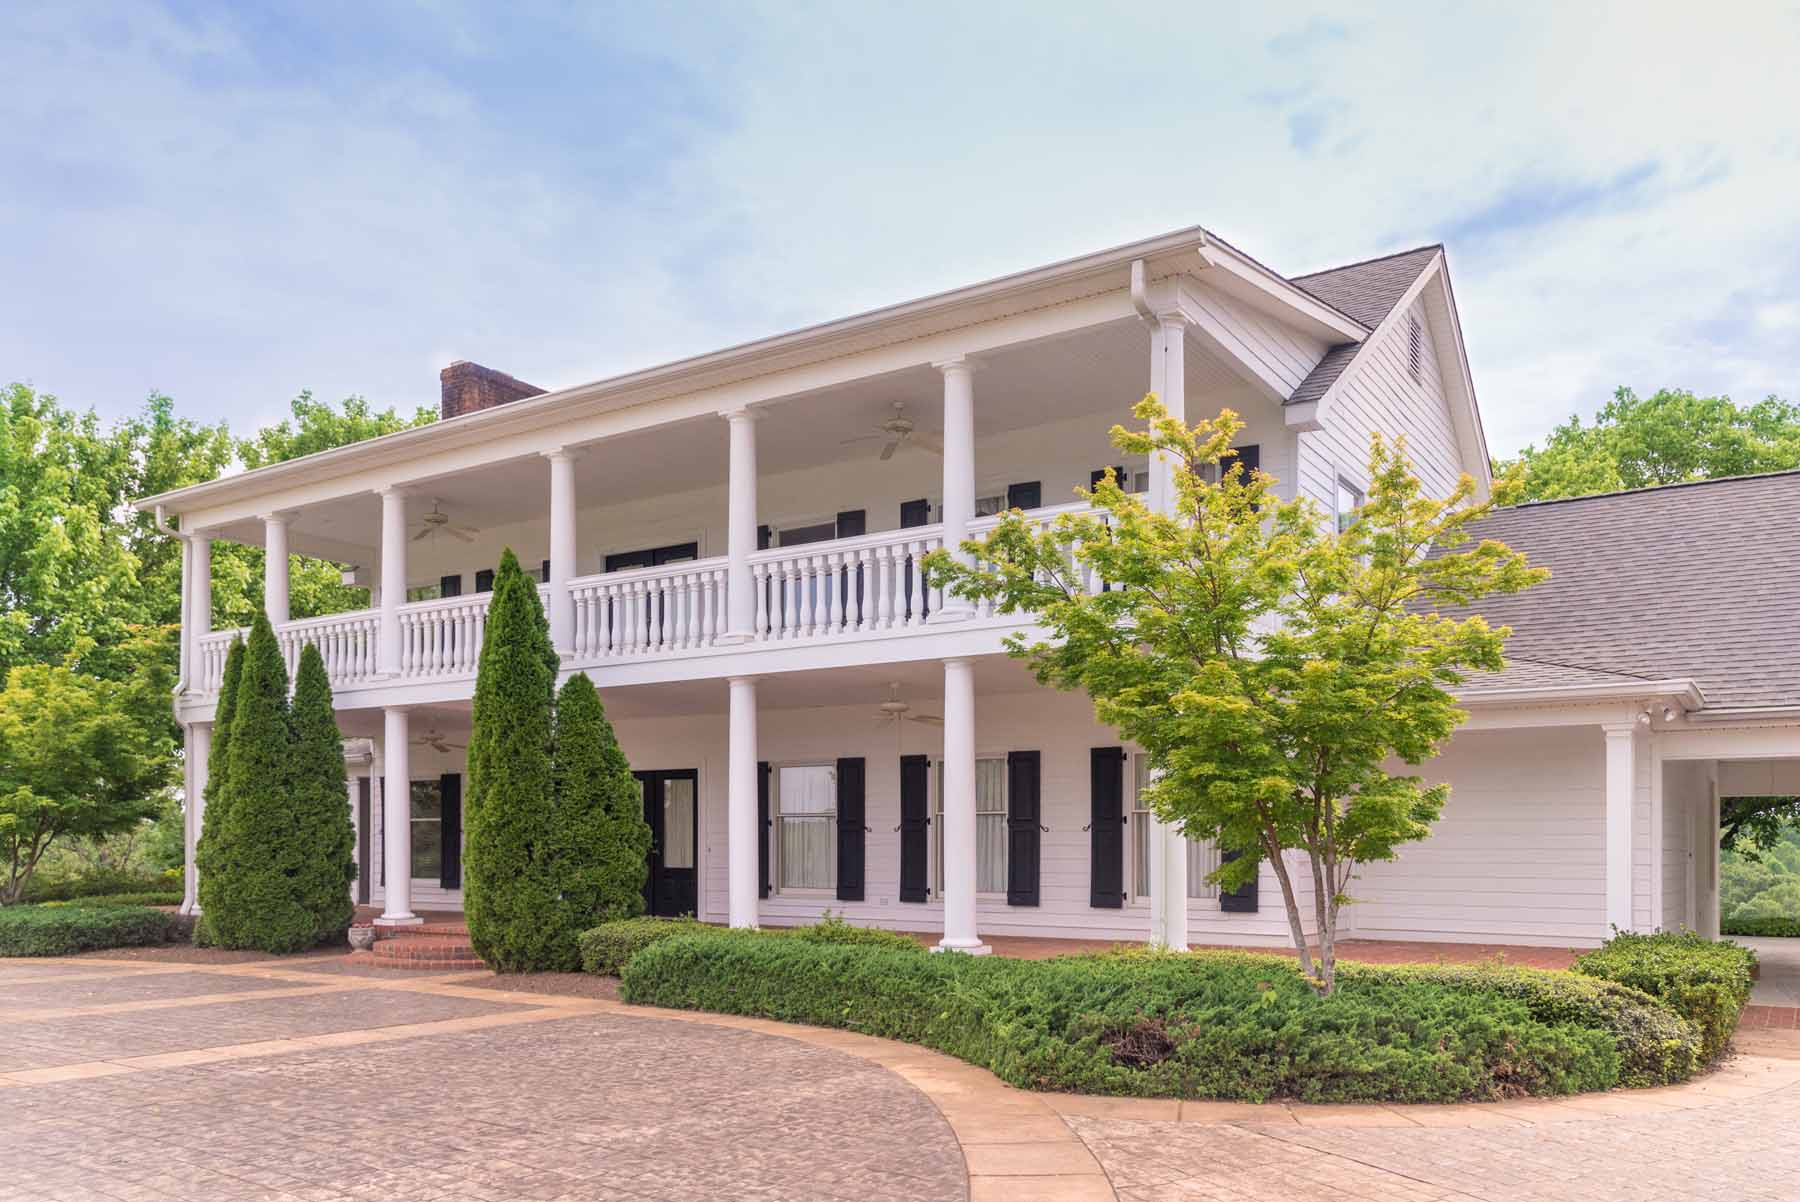 Maison unifamiliale pour l Vente à Soque River Estate 1305 New Liberty Road Clarkesville, Georgia, 30523 États-Unis